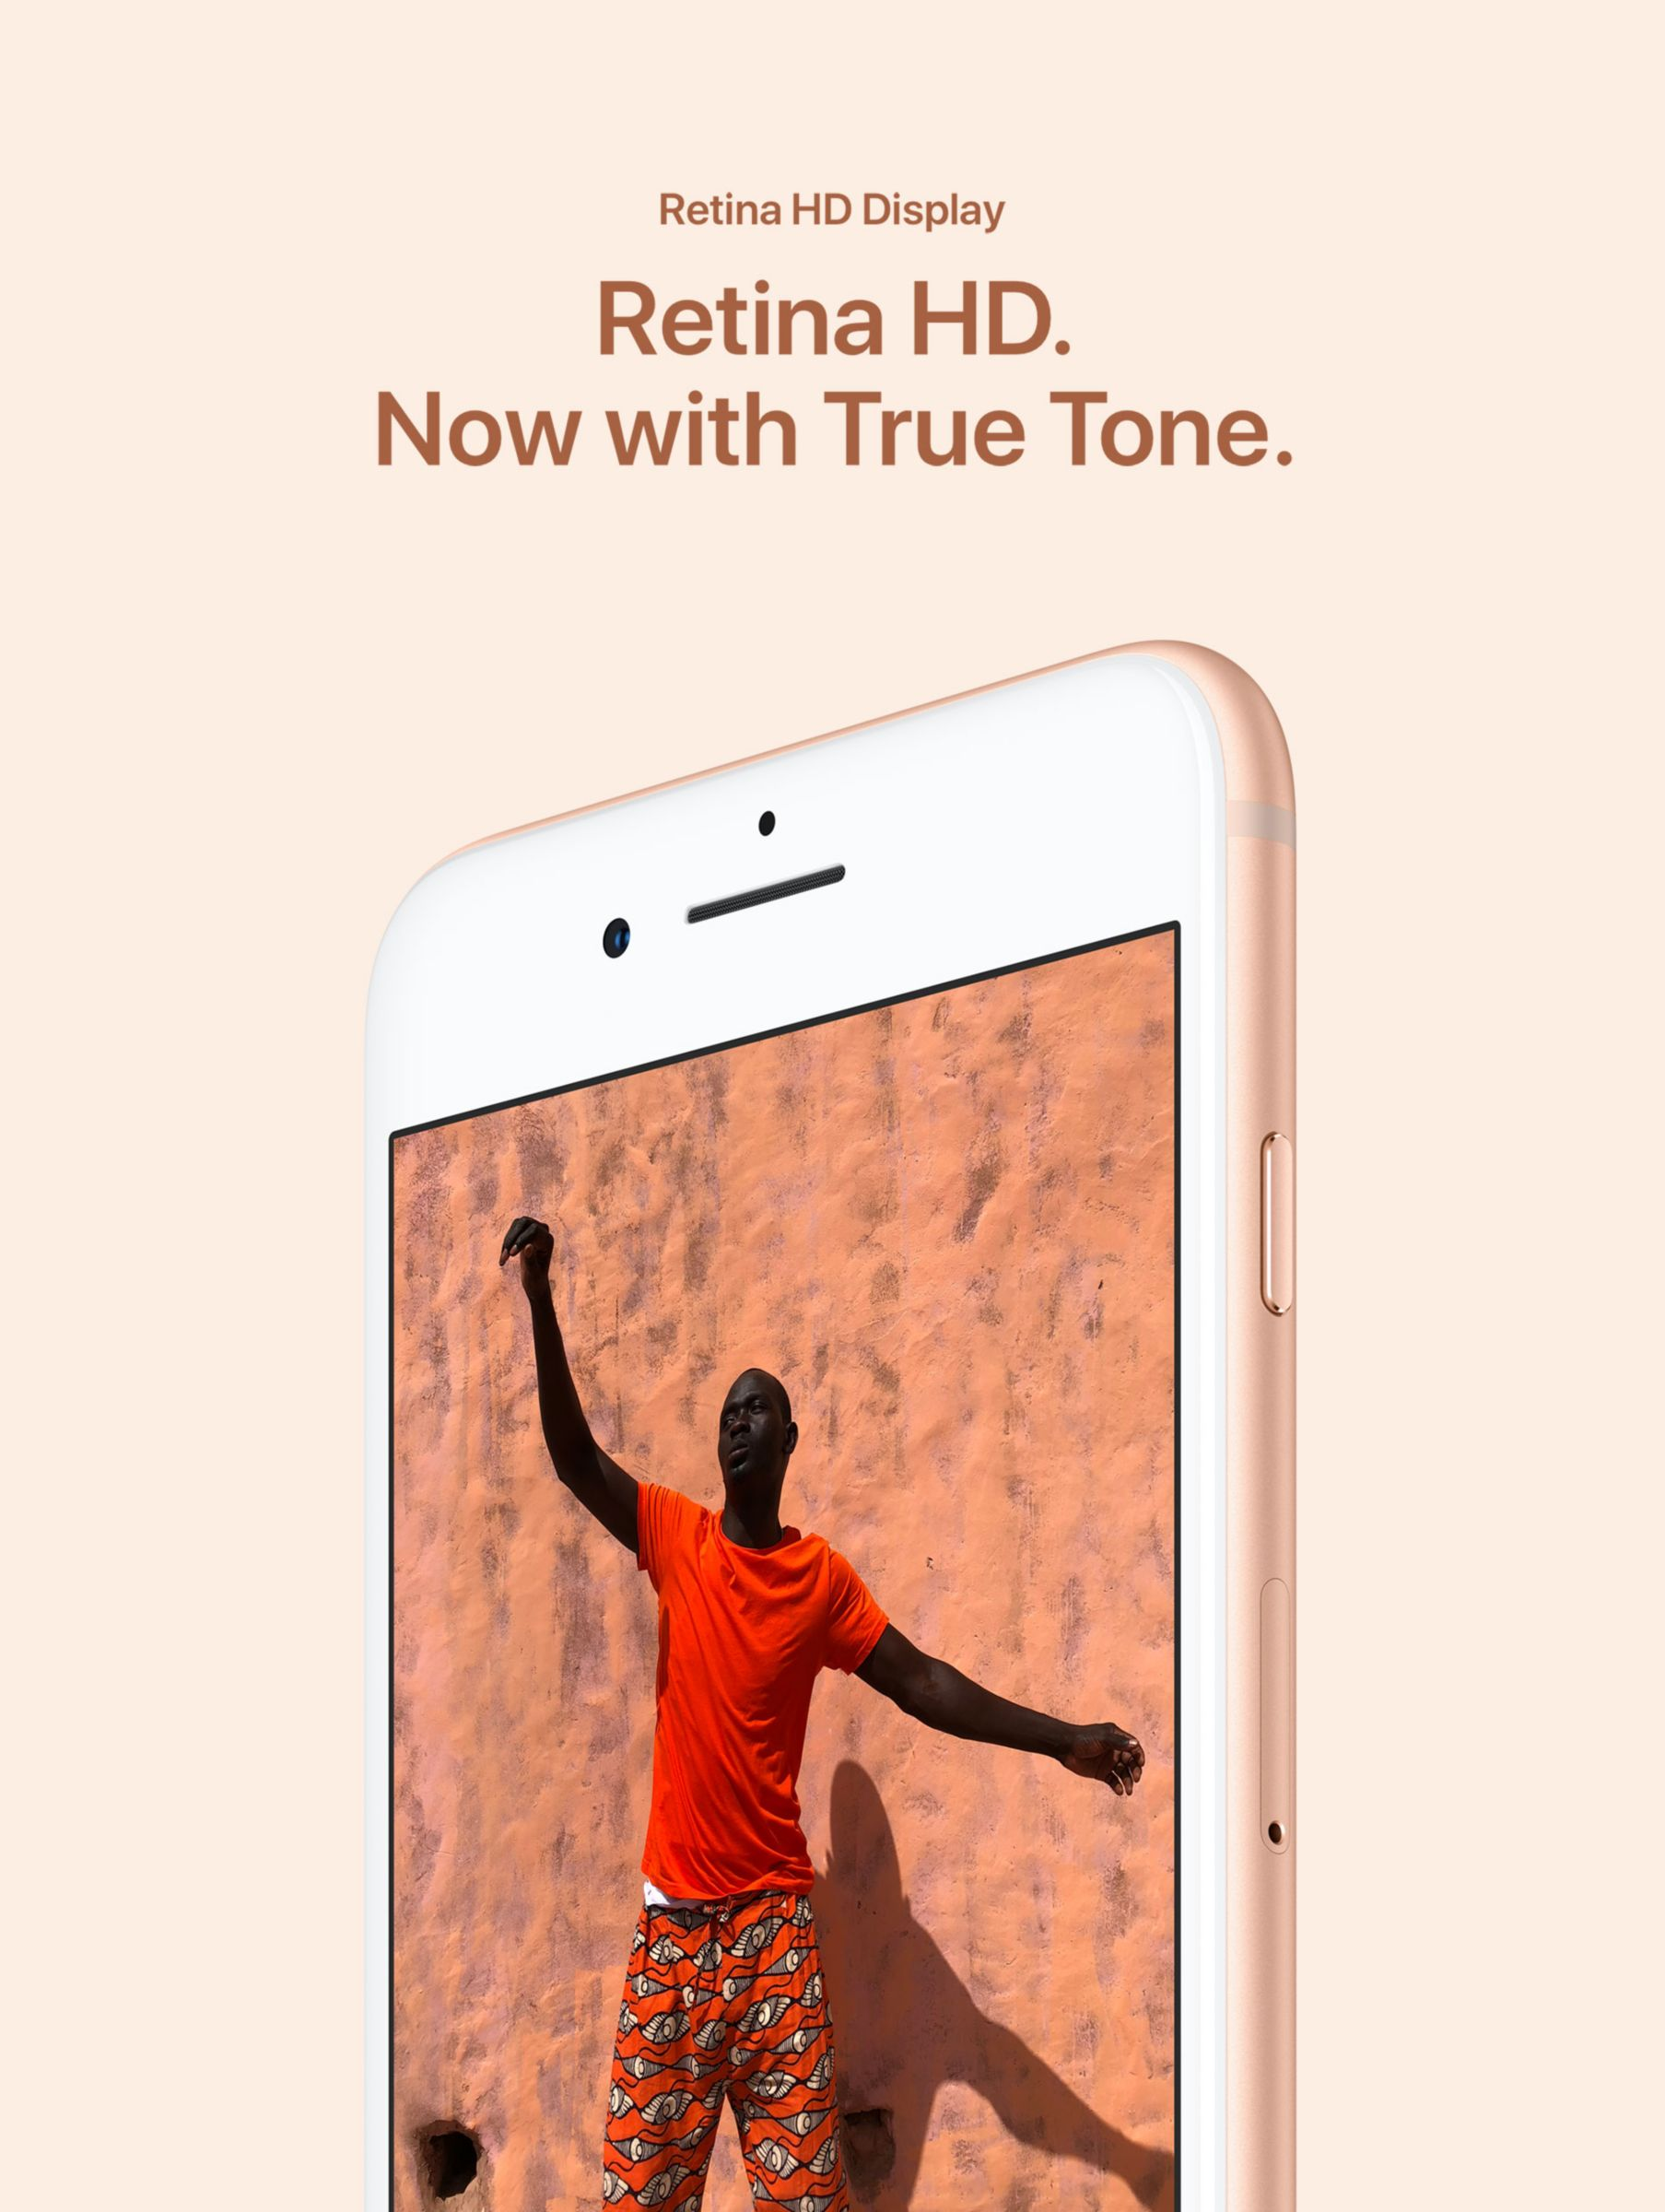 Retina HD Display - Retina HD. Now with True Tone.